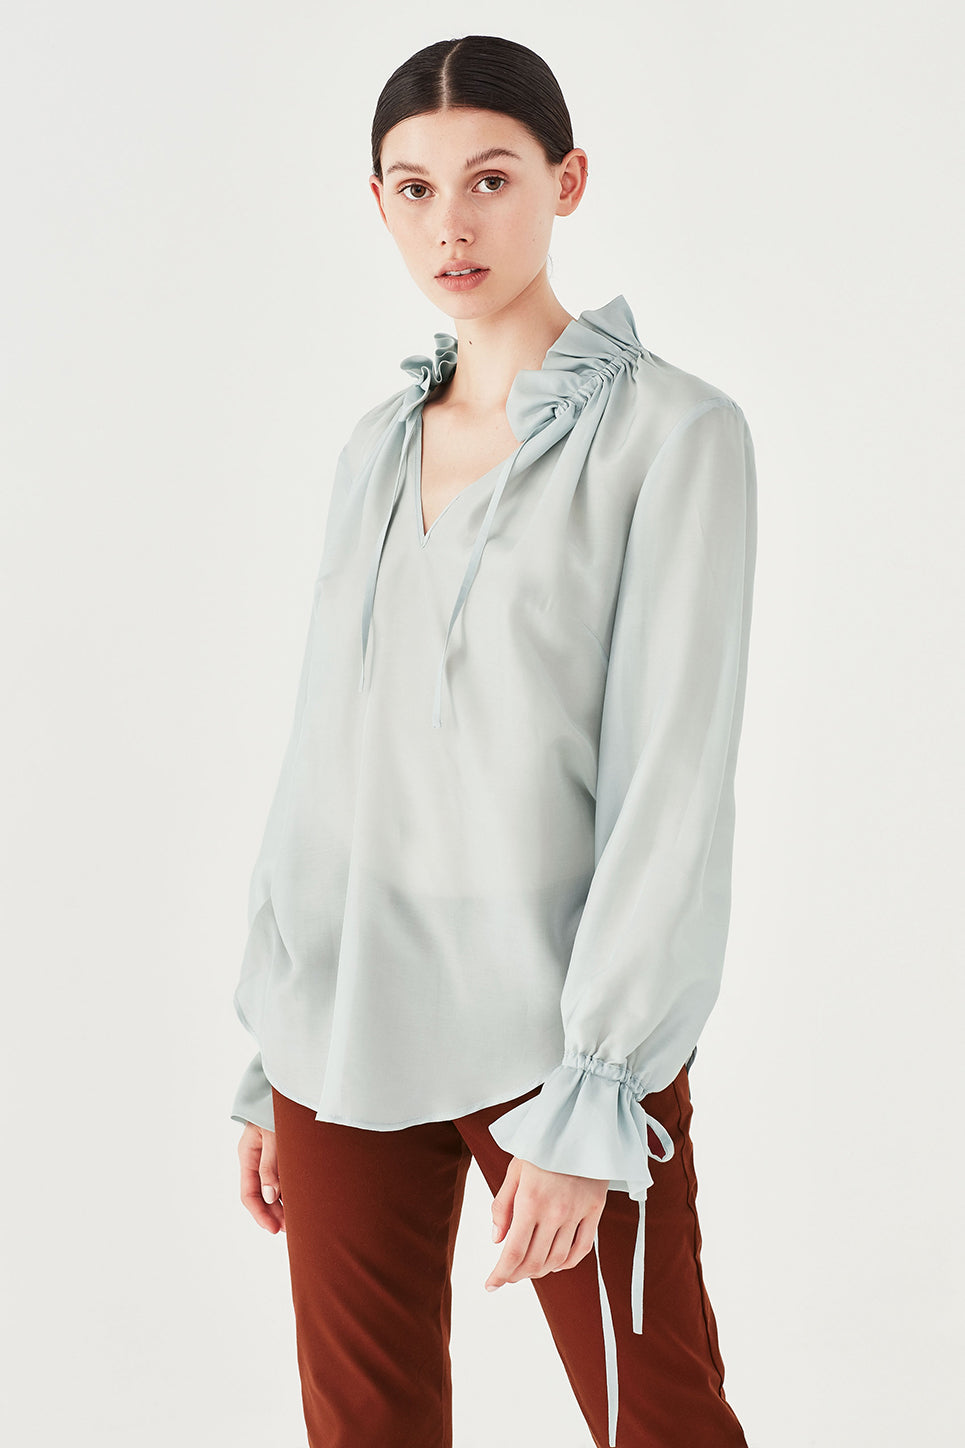 The Primrose Blouse in Turquoise